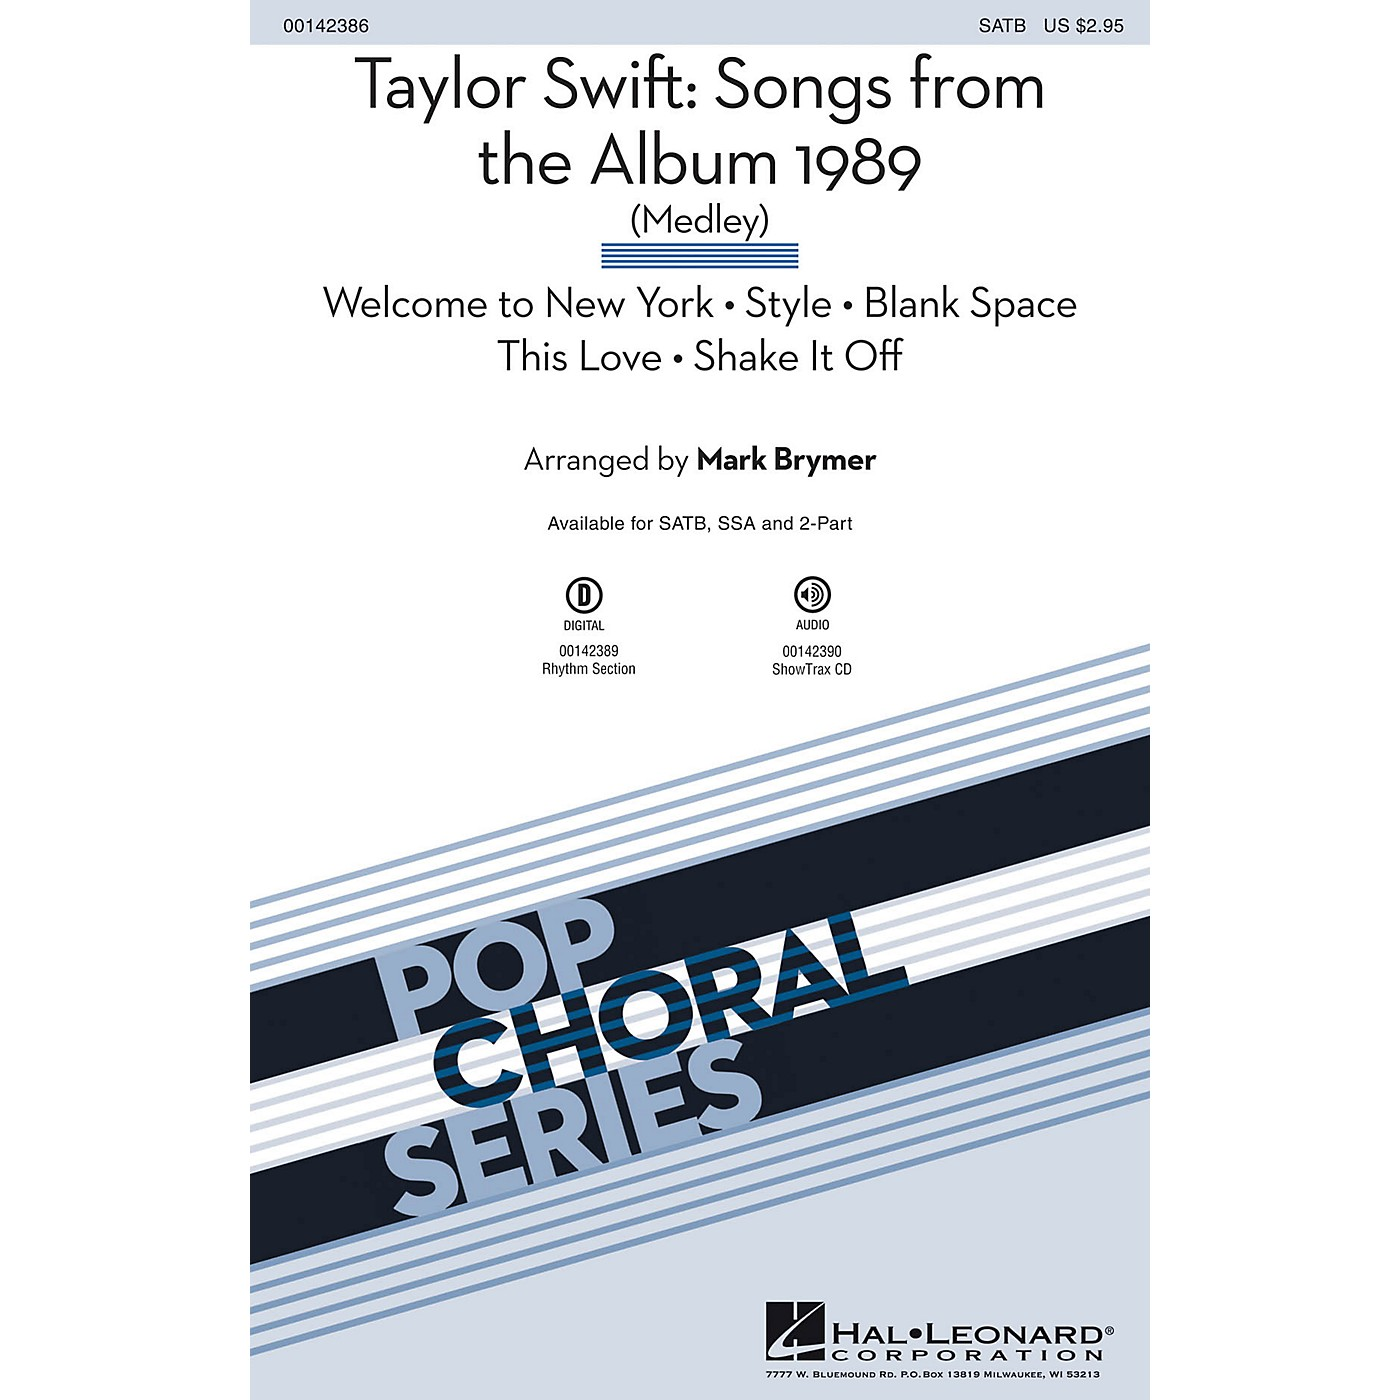 Hal Leonard Taylor Swift: Songs from the Album 1989 (Medley) SSA by Taylor Swift Arranged by Mark Brymer thumbnail